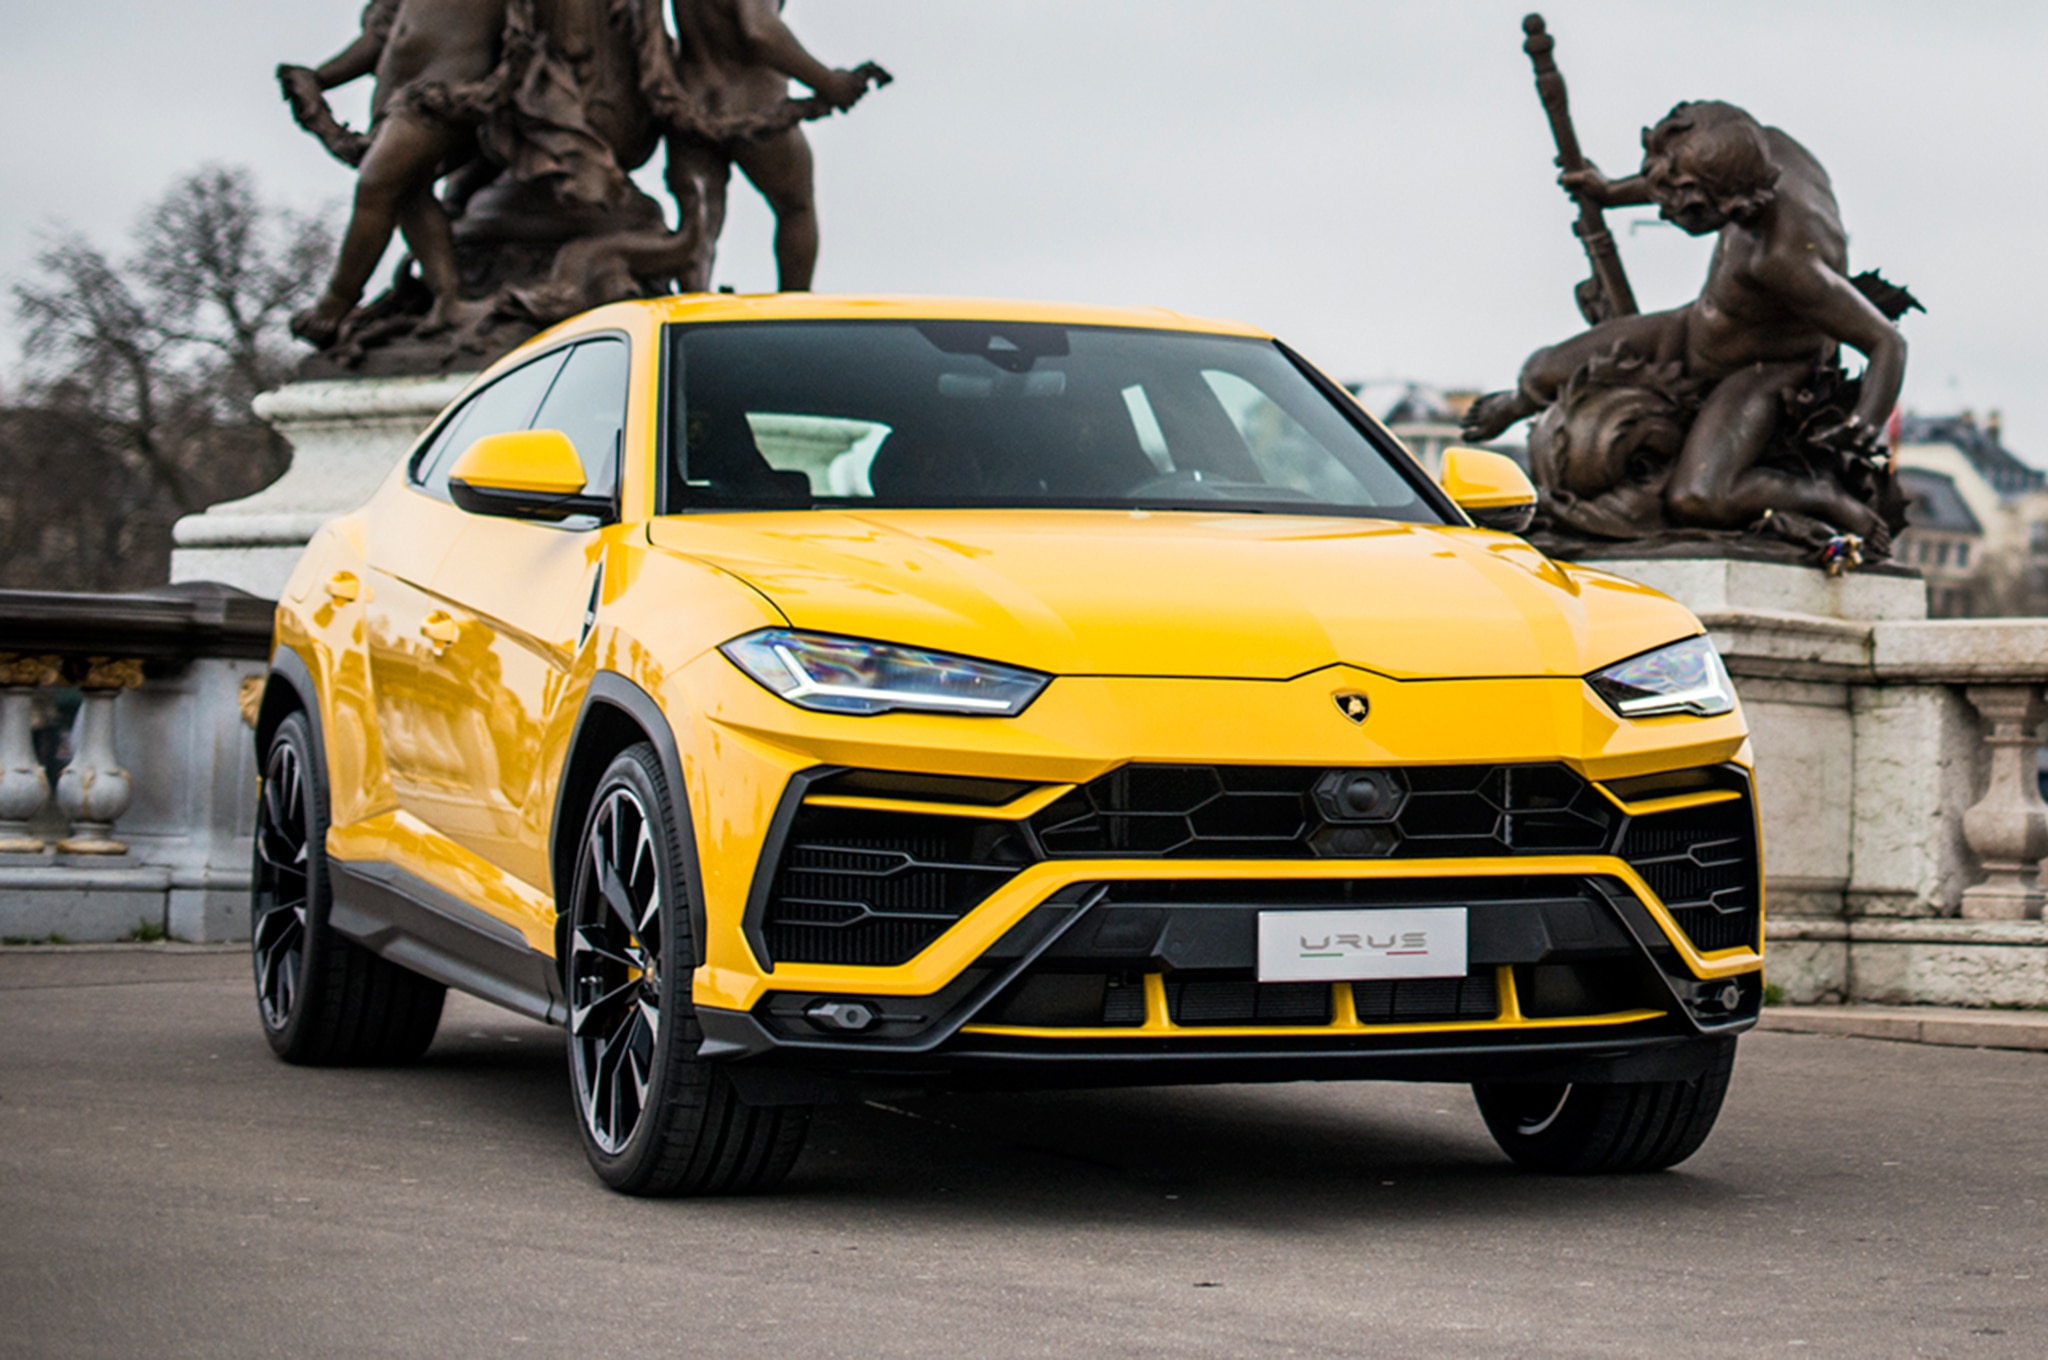 2019 lamborghini urus first drive review automobile magazine. Black Bedroom Furniture Sets. Home Design Ideas